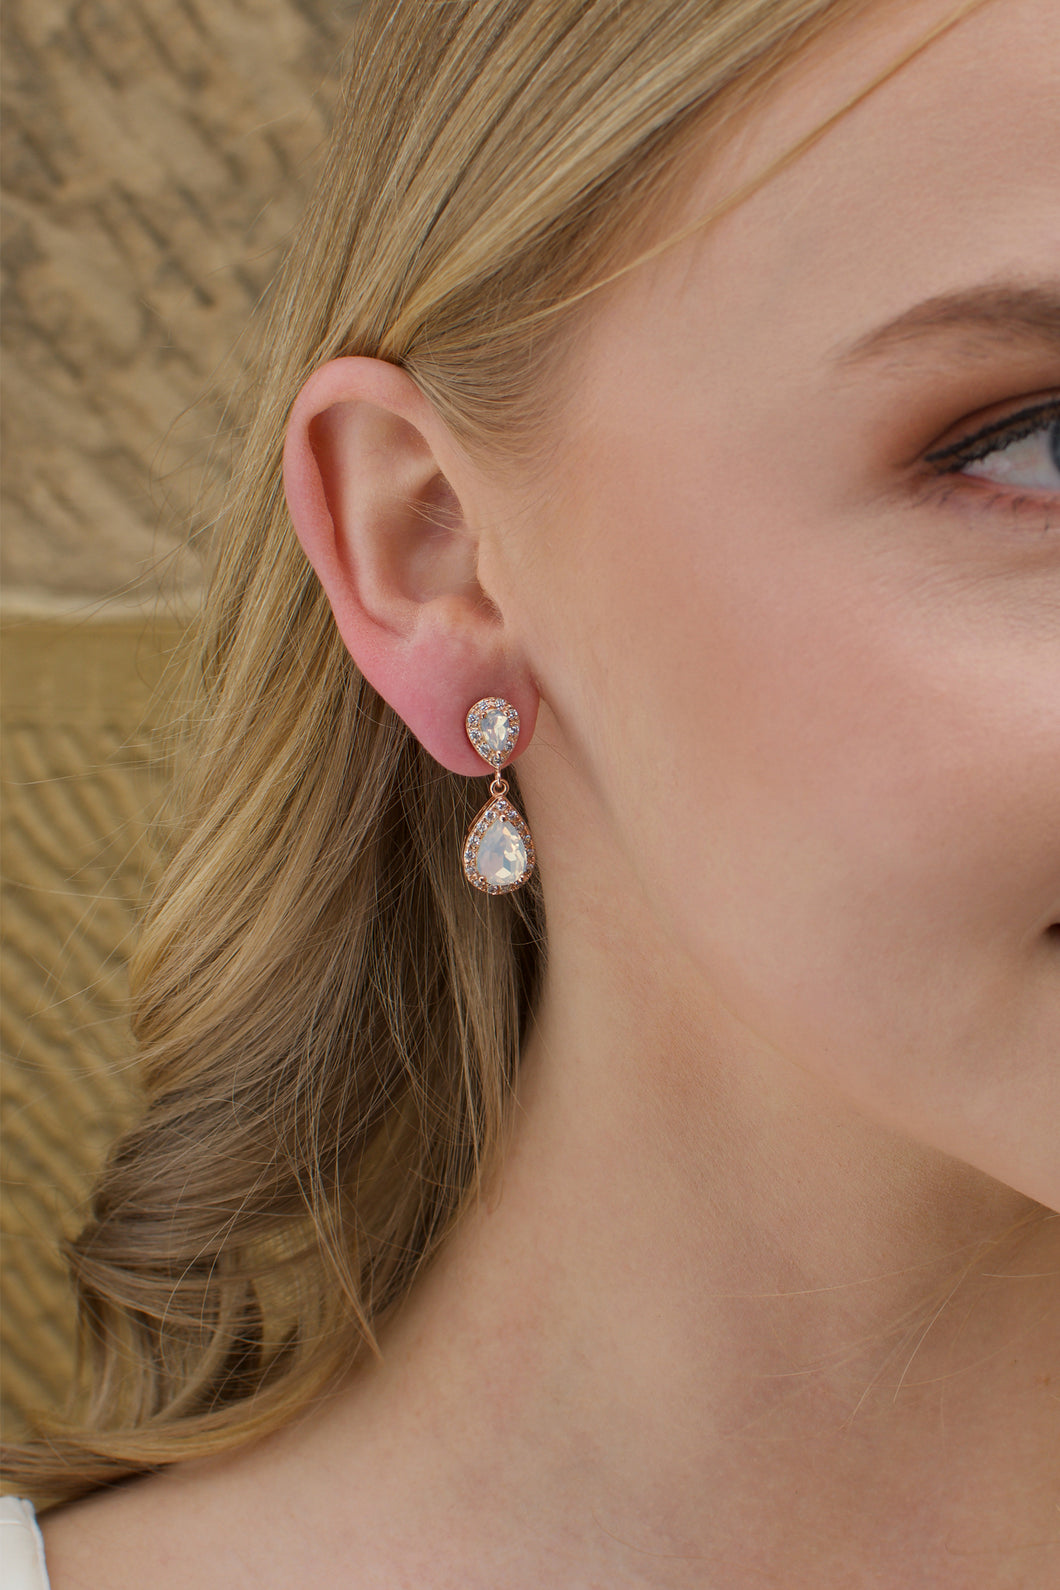 A blonde model bride wears a double teardrop earring with white opal colour stones